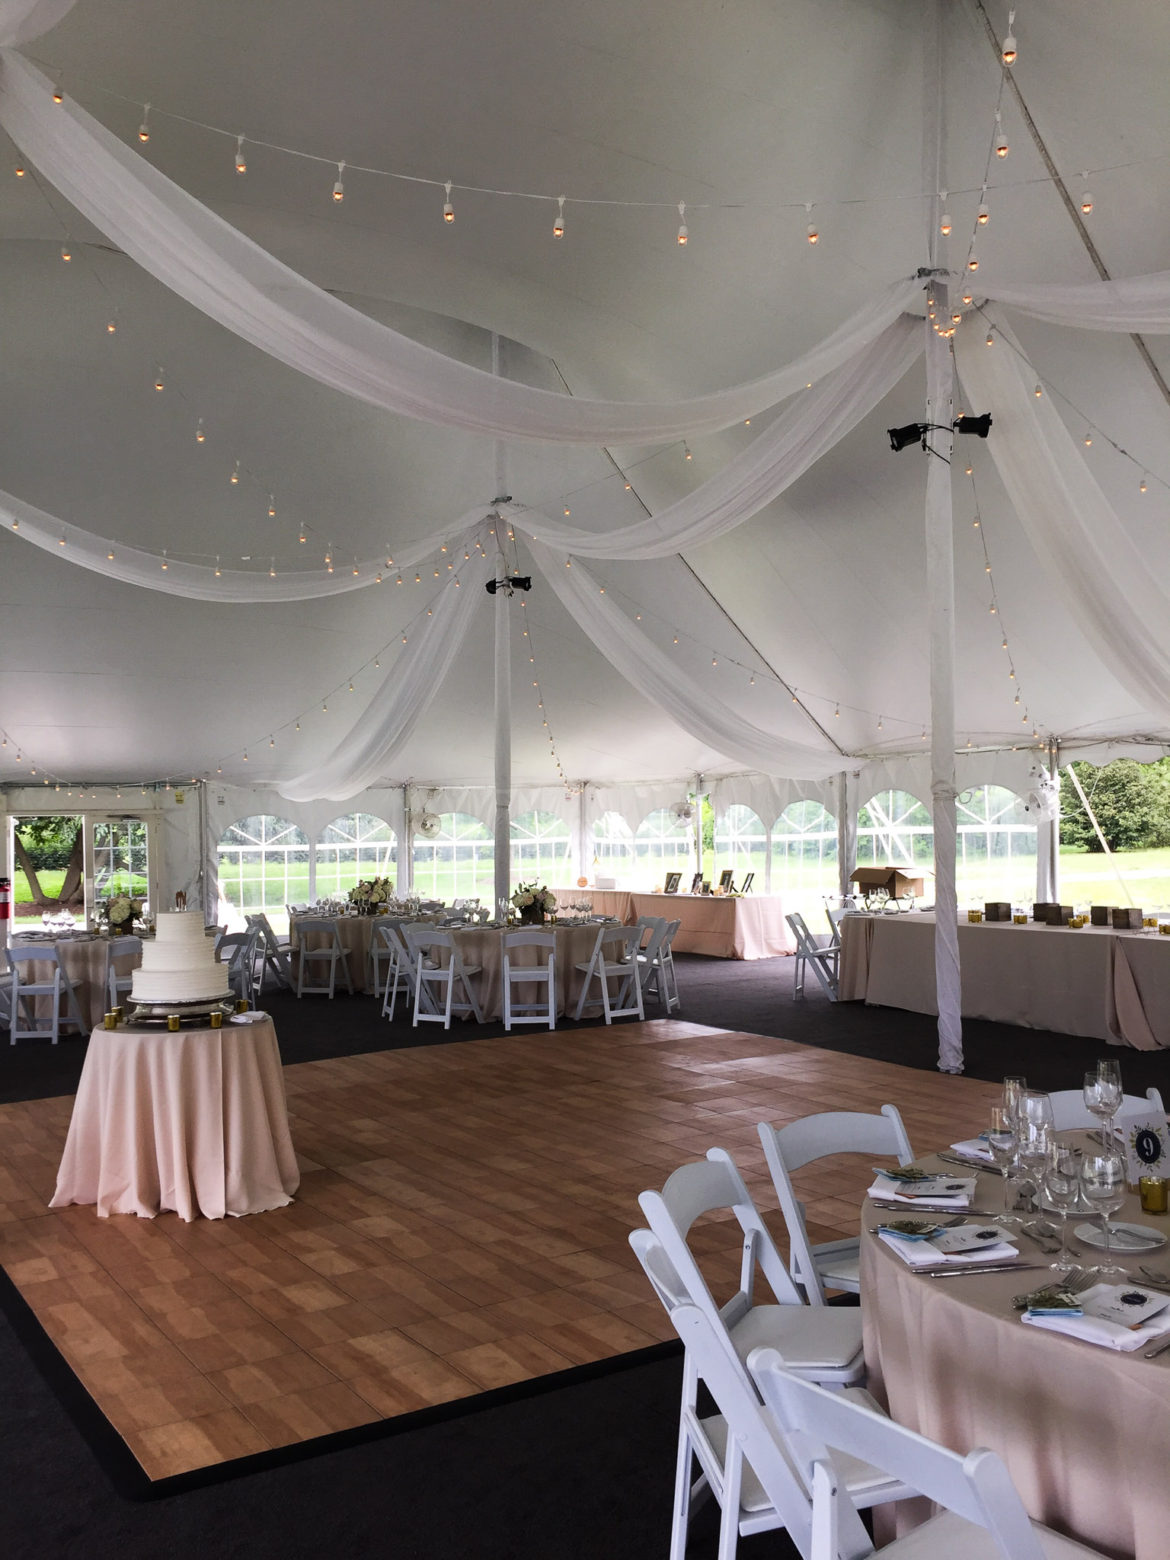 Elegant_Event_Lighting_Chicago_The_Morton_Arboretum_Lisle_White_White_Pavilion_Wedding_Cafe_Globe_String_Lighting_Ceiling_Draping